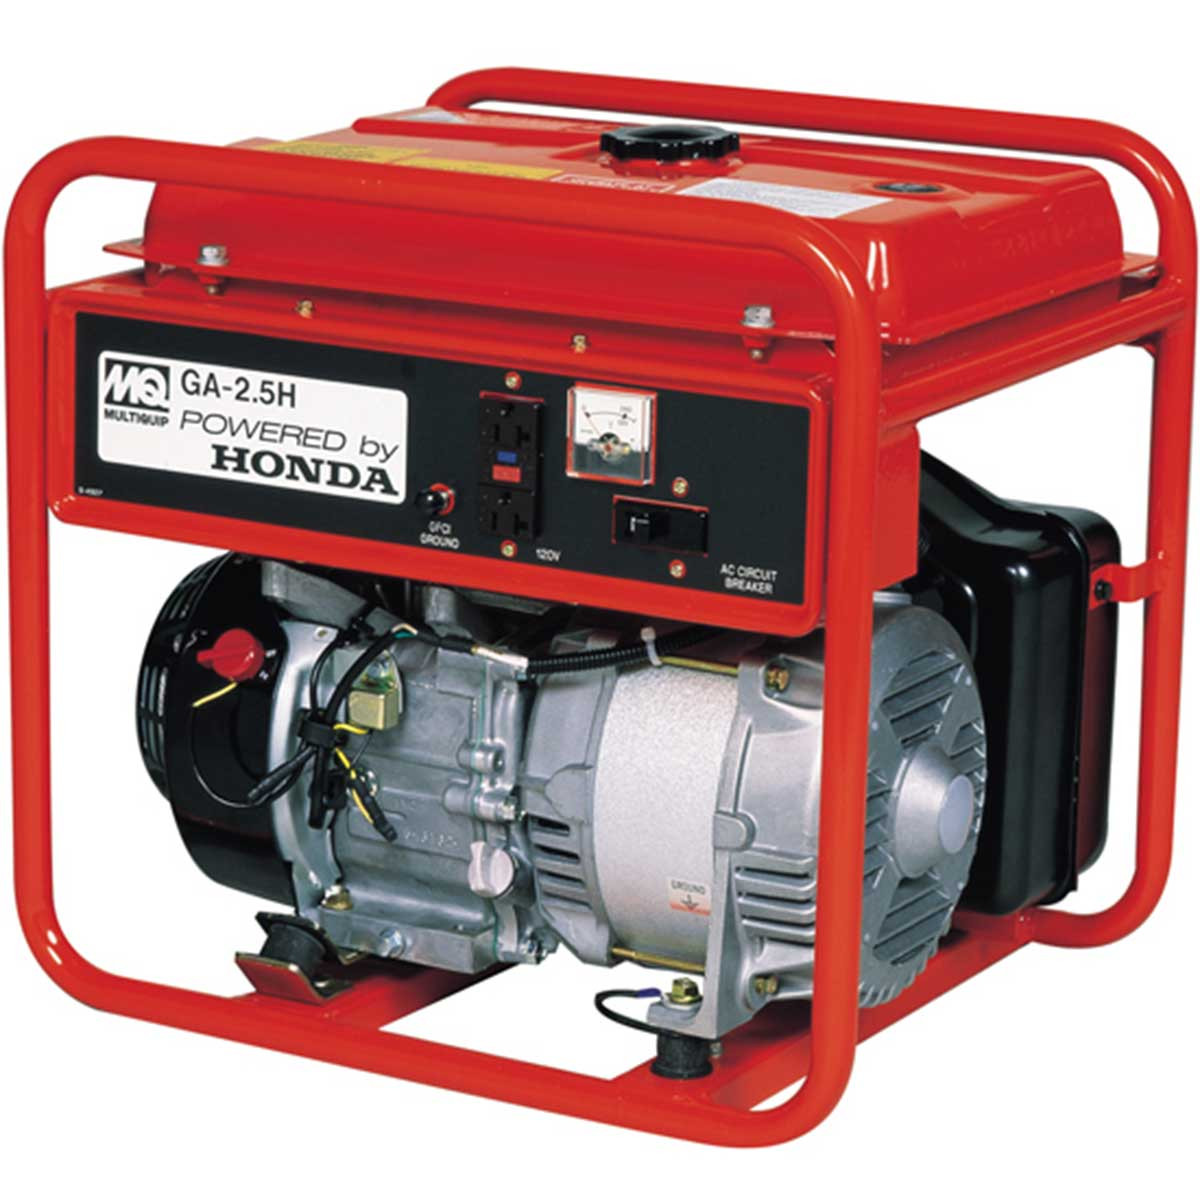 multiquip 5.5hp portable generator 2500 watt